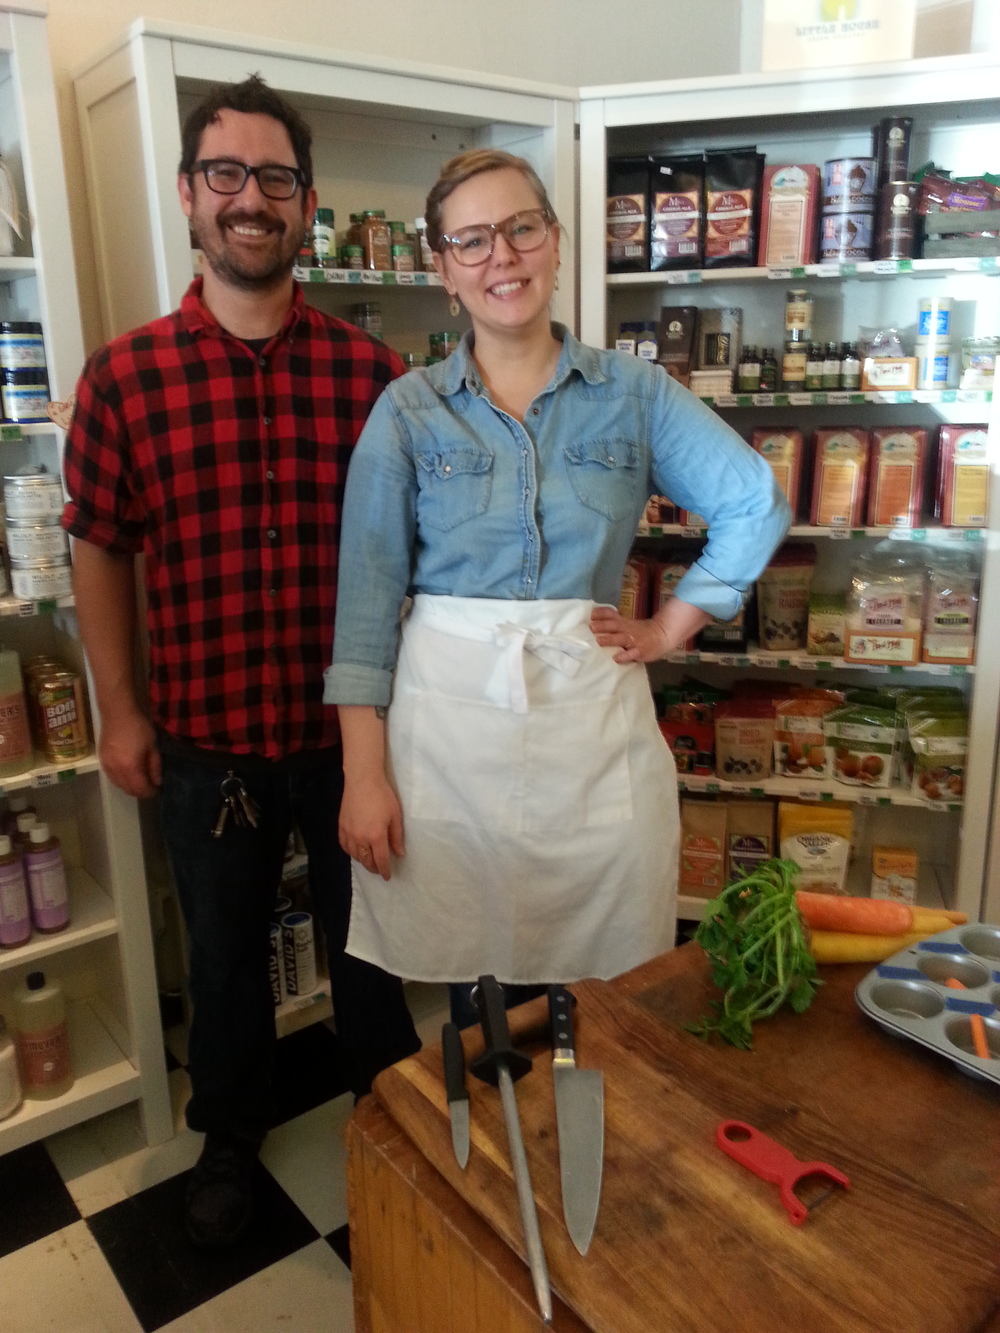 Our class instructor, Chef Brittany Anderson, with husband Kjell. Brittany is the chef/owner of the soon-to-open Metzger Bar and Butchery in Church Hill.